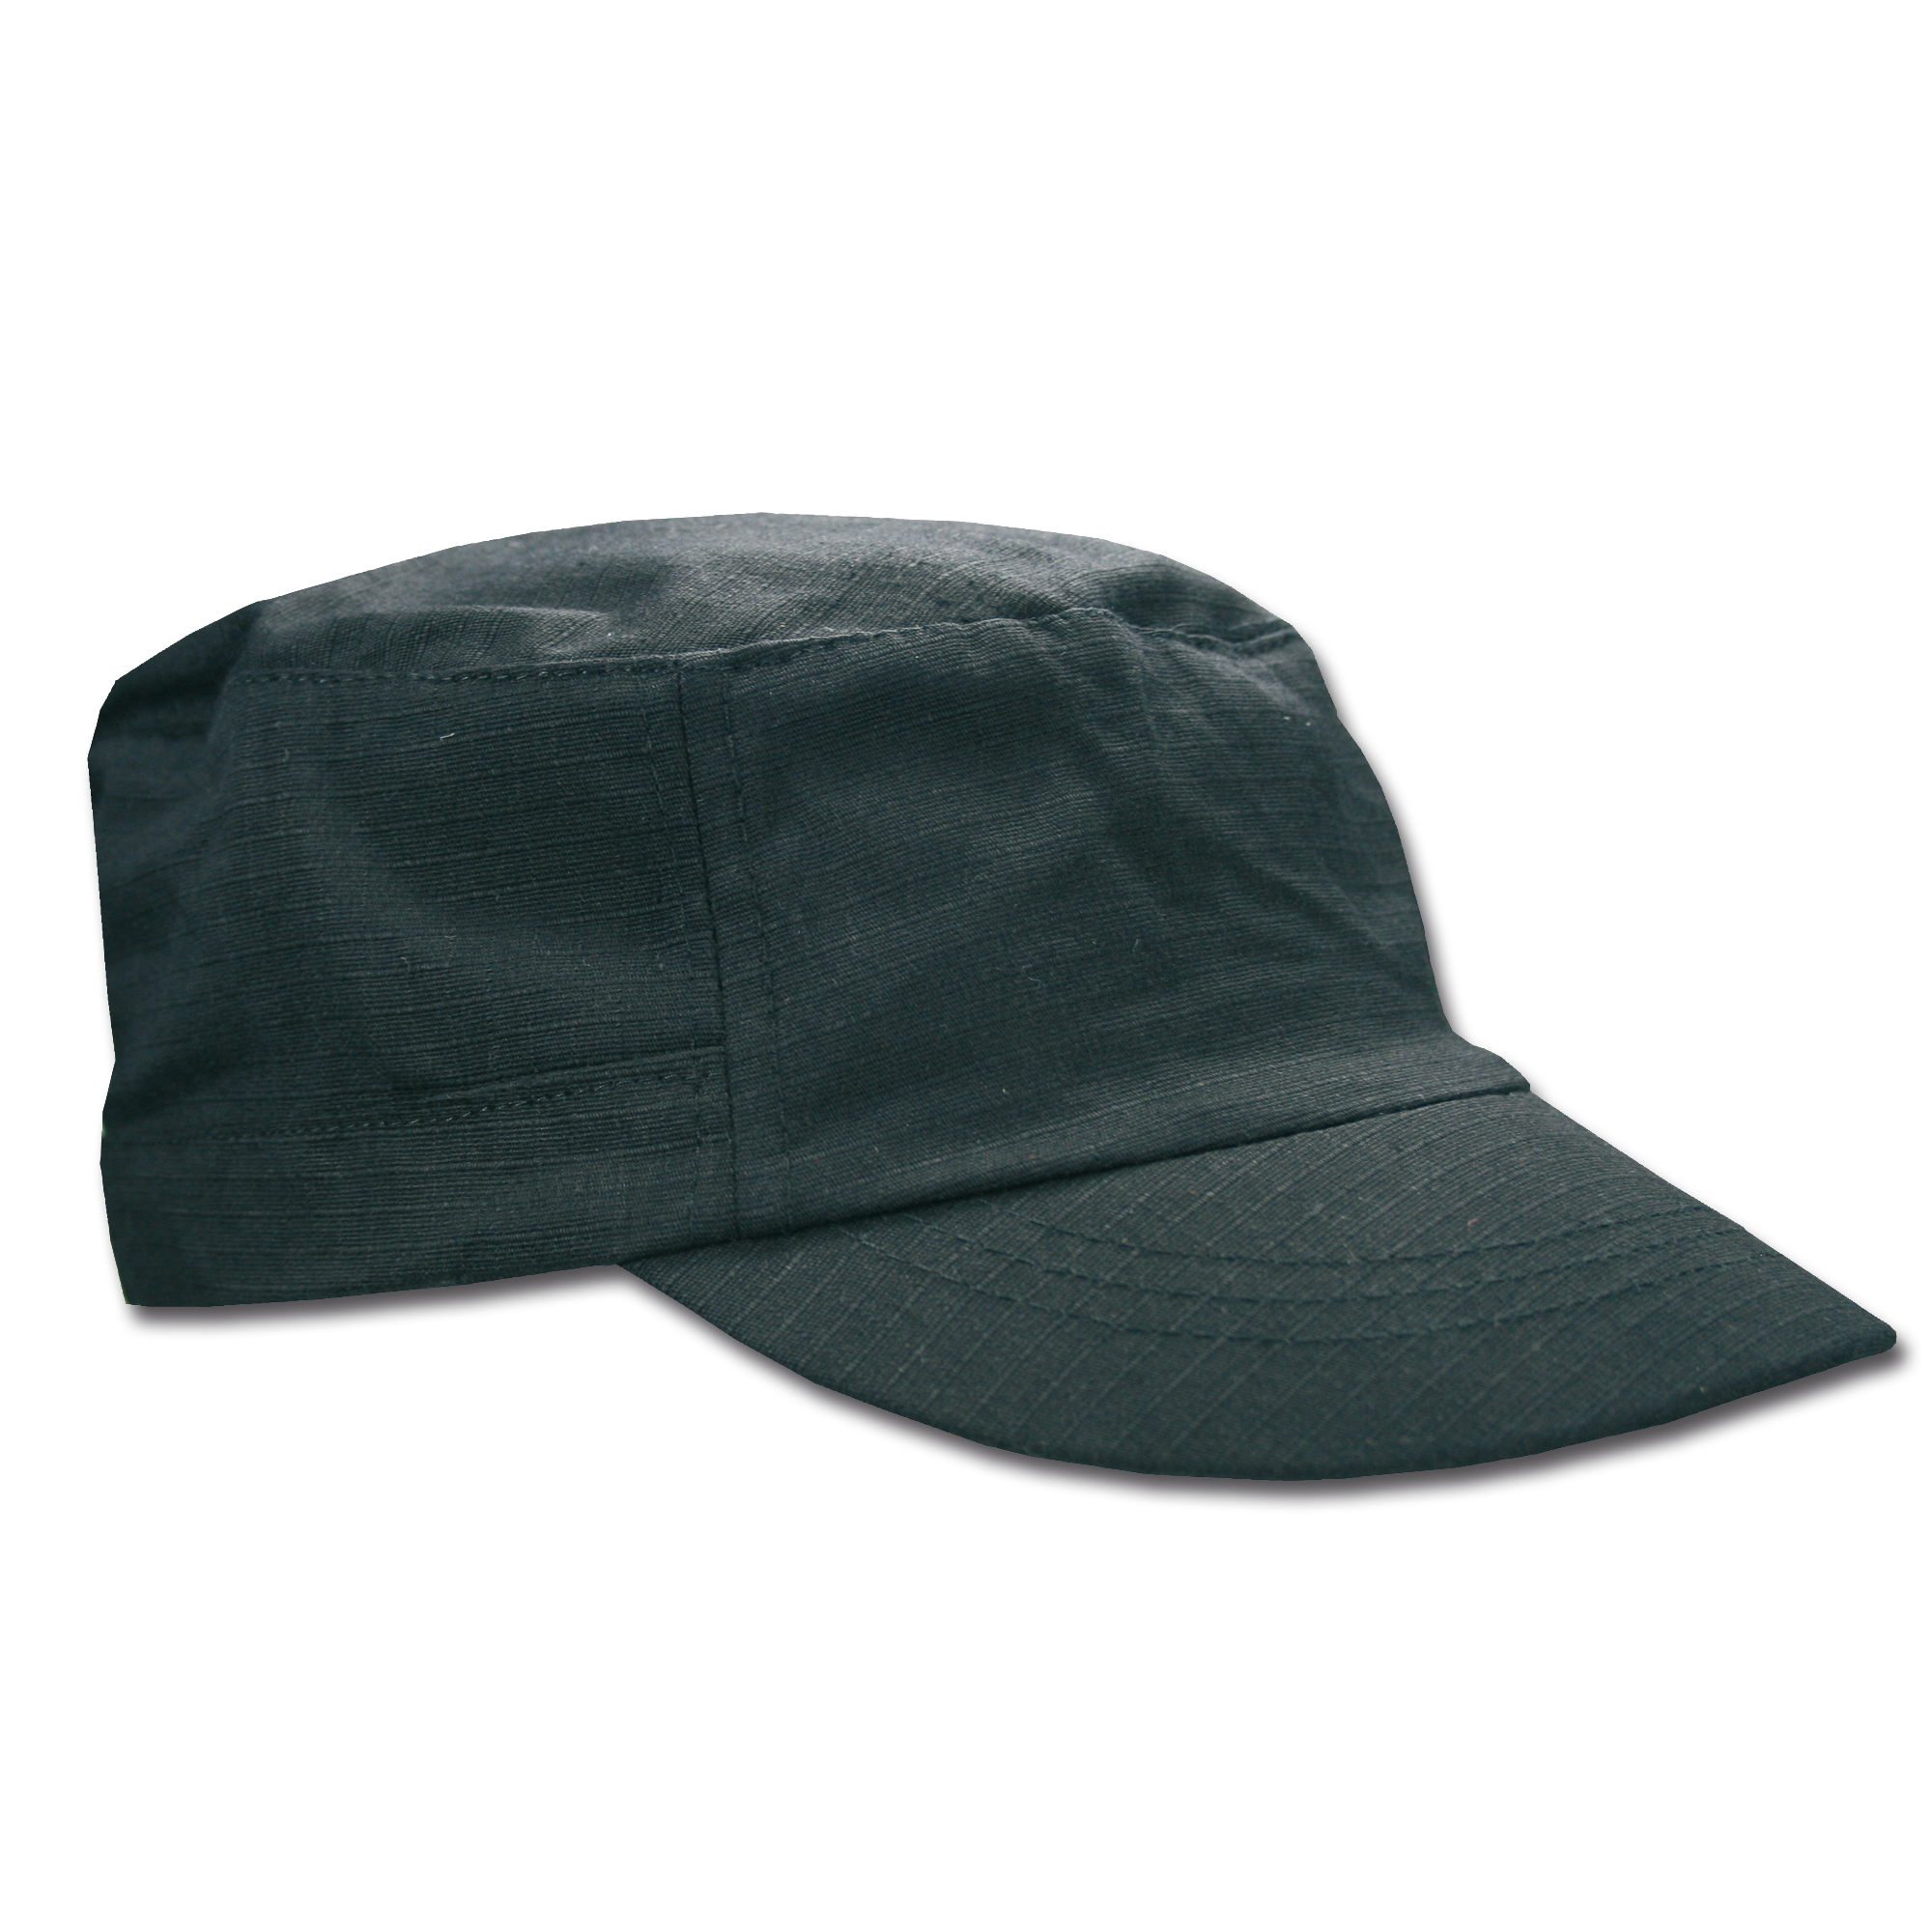 BDU Flexcap black